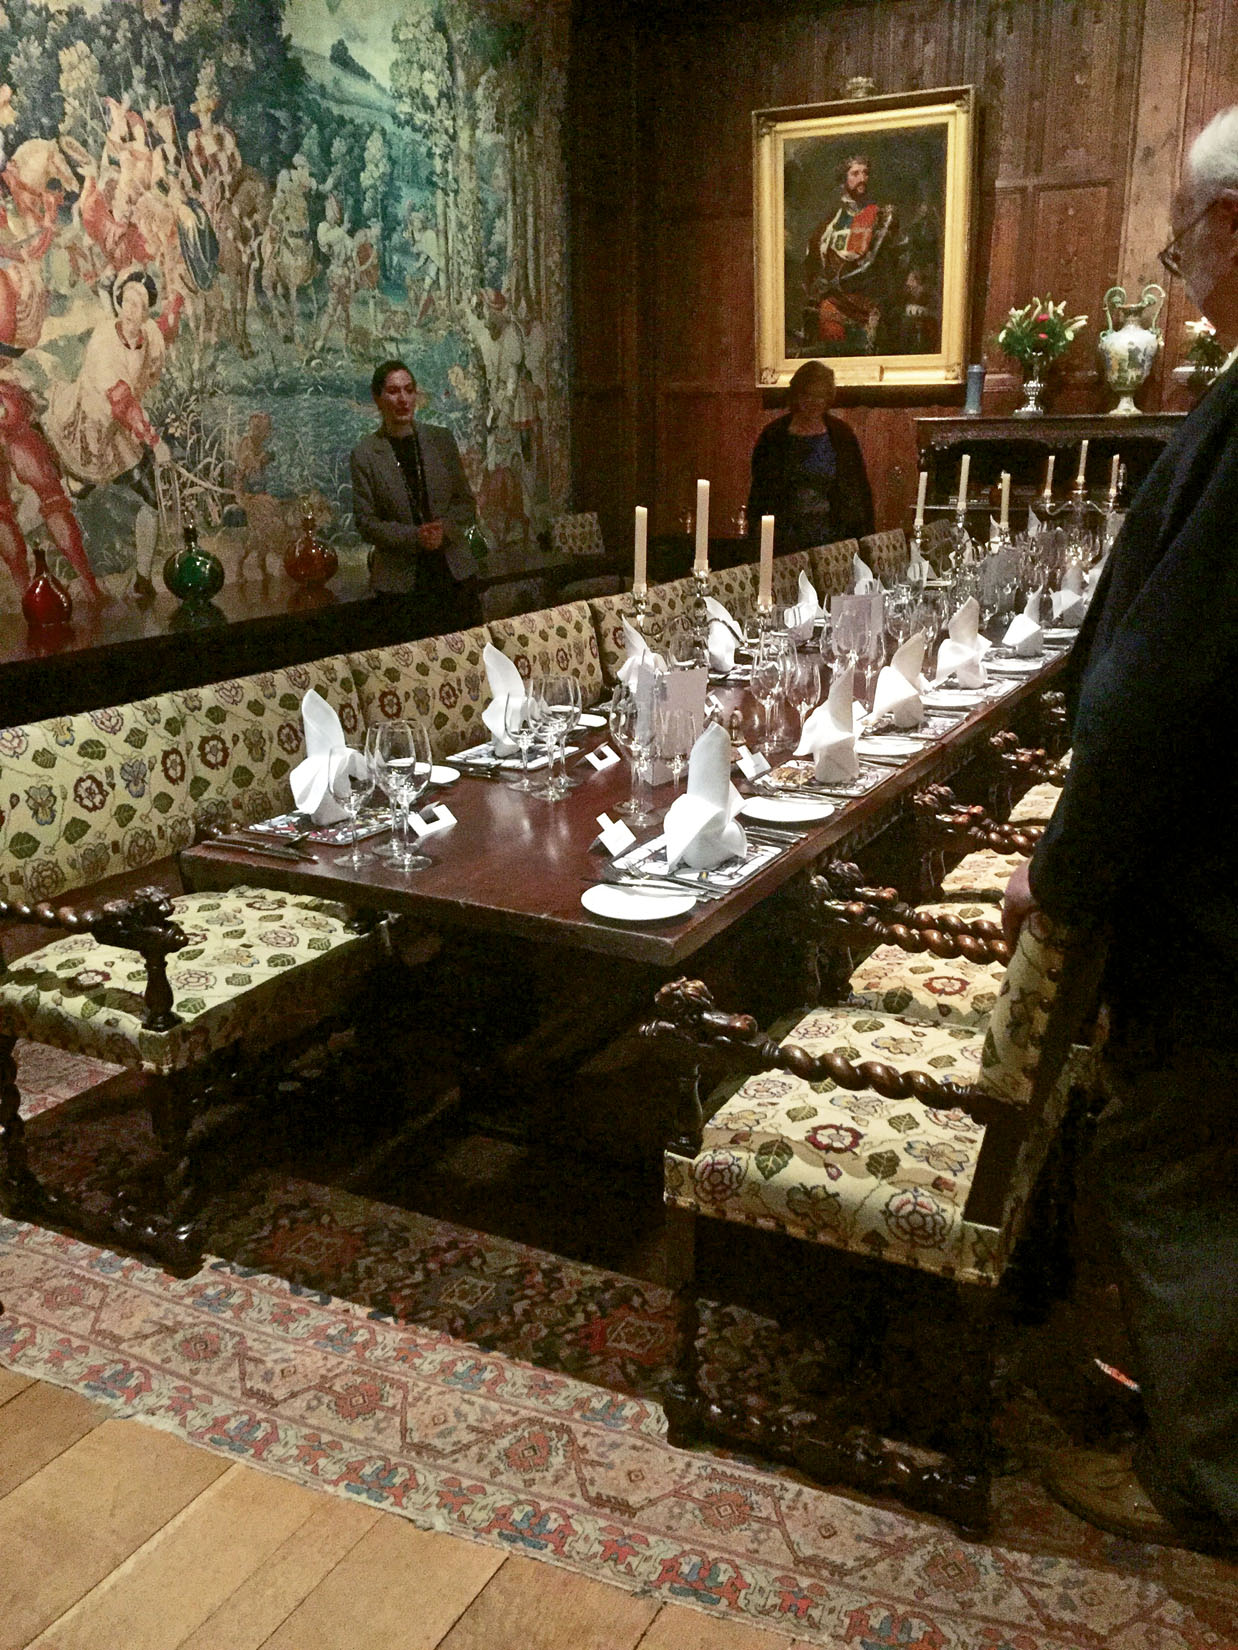 The dining room at Hever Castle in Kent. Photo Credit: Felicity Long